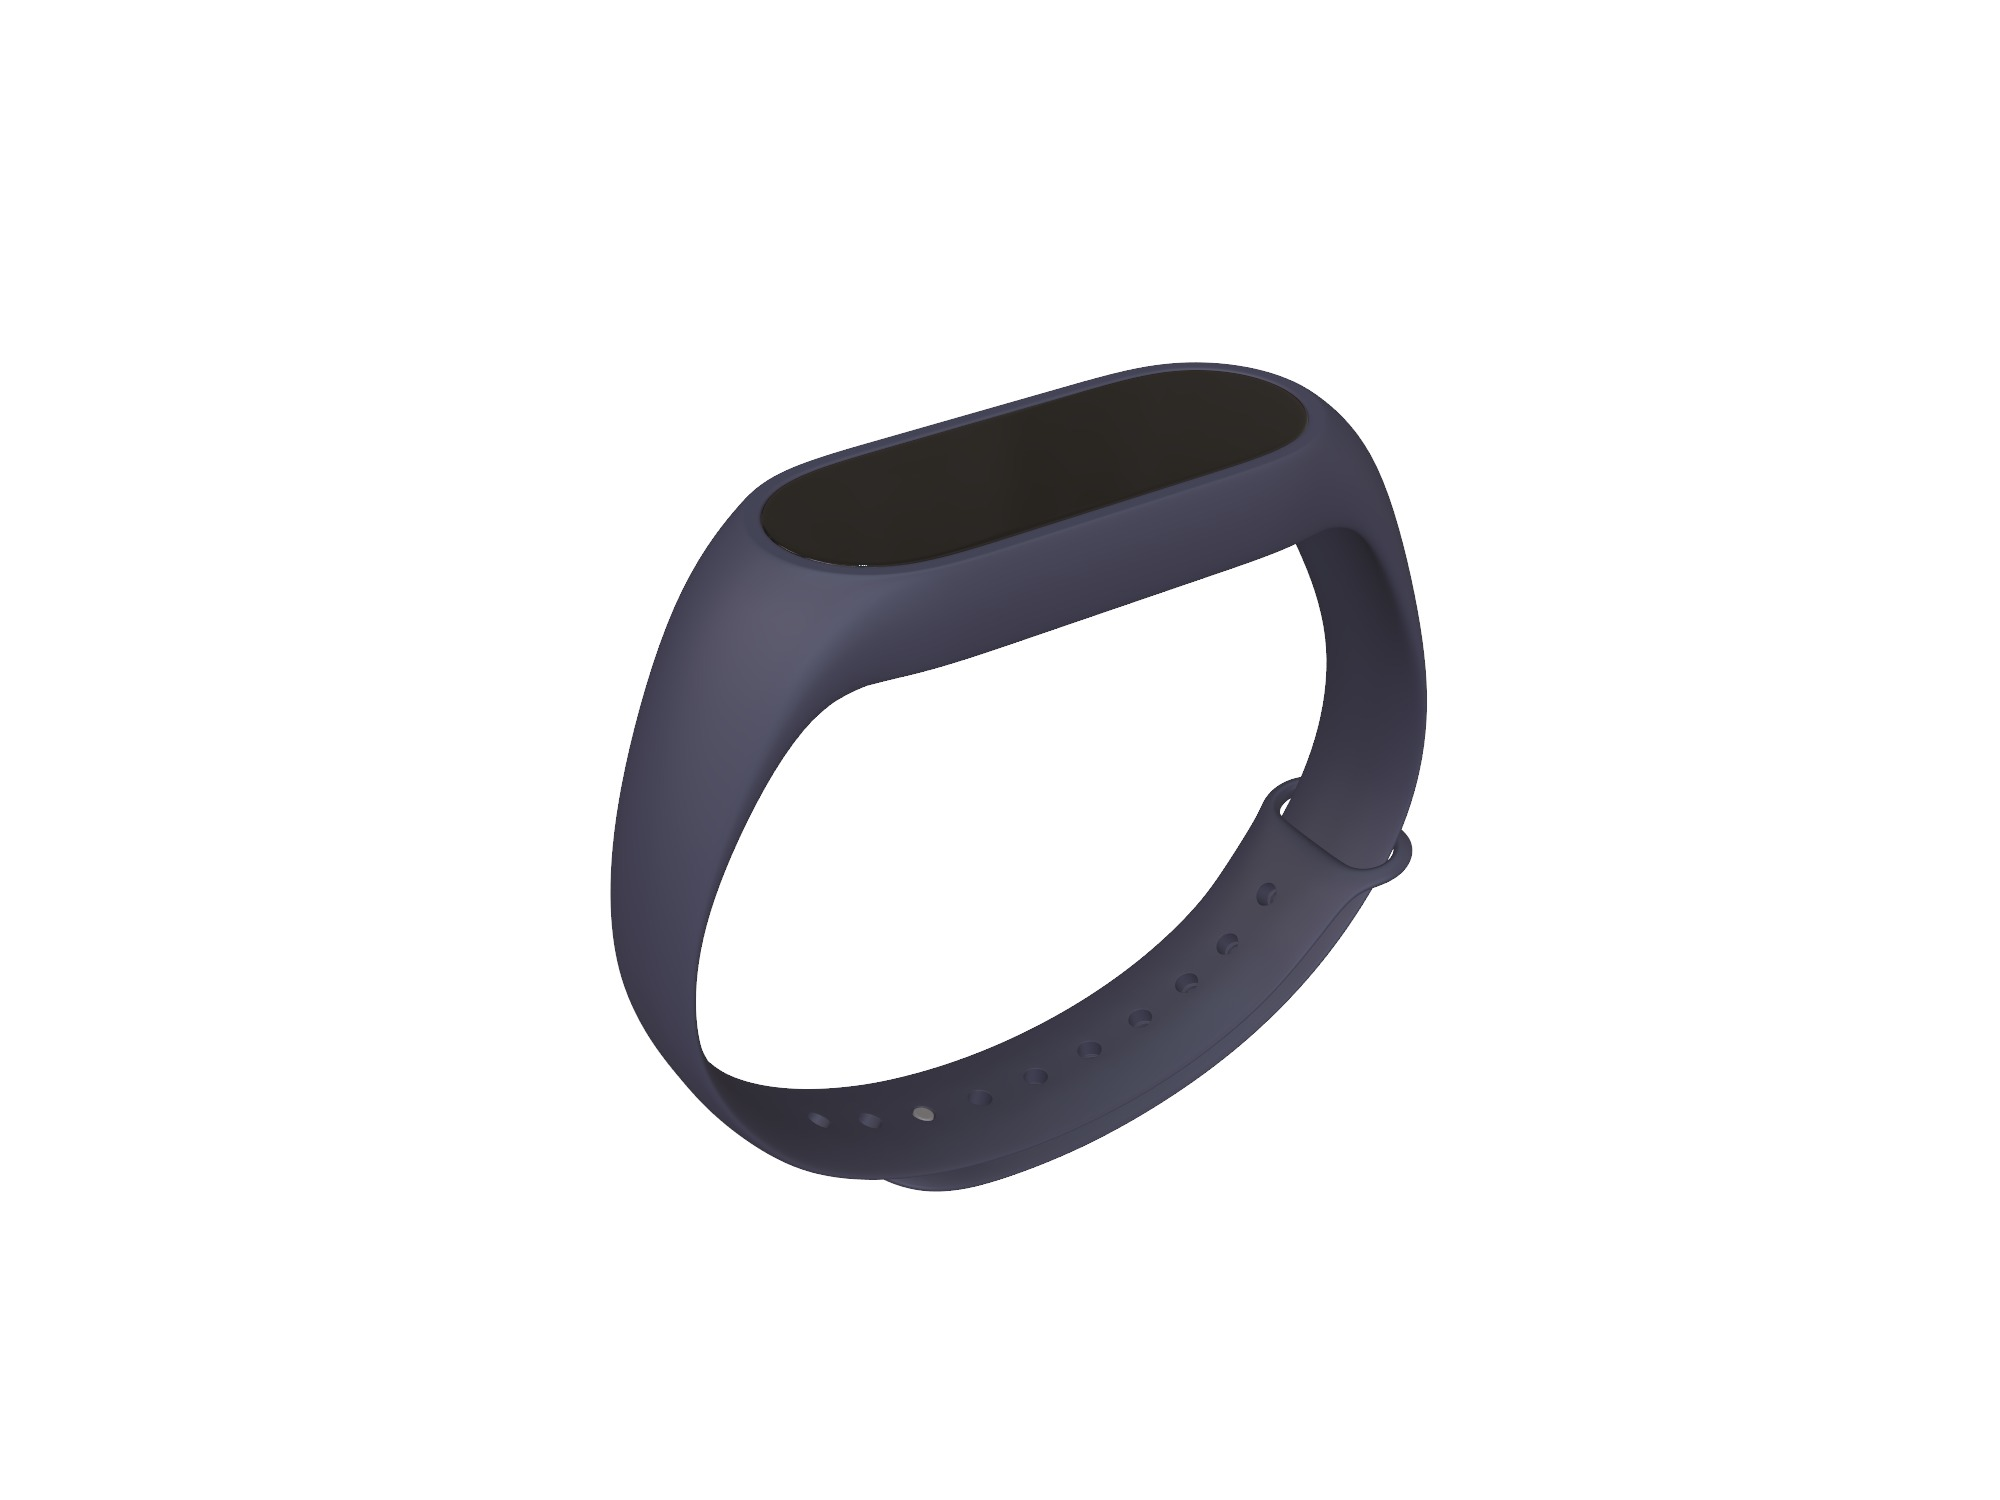 Fitness smartband - 3D design by Vectary assets Jun 3, 2018